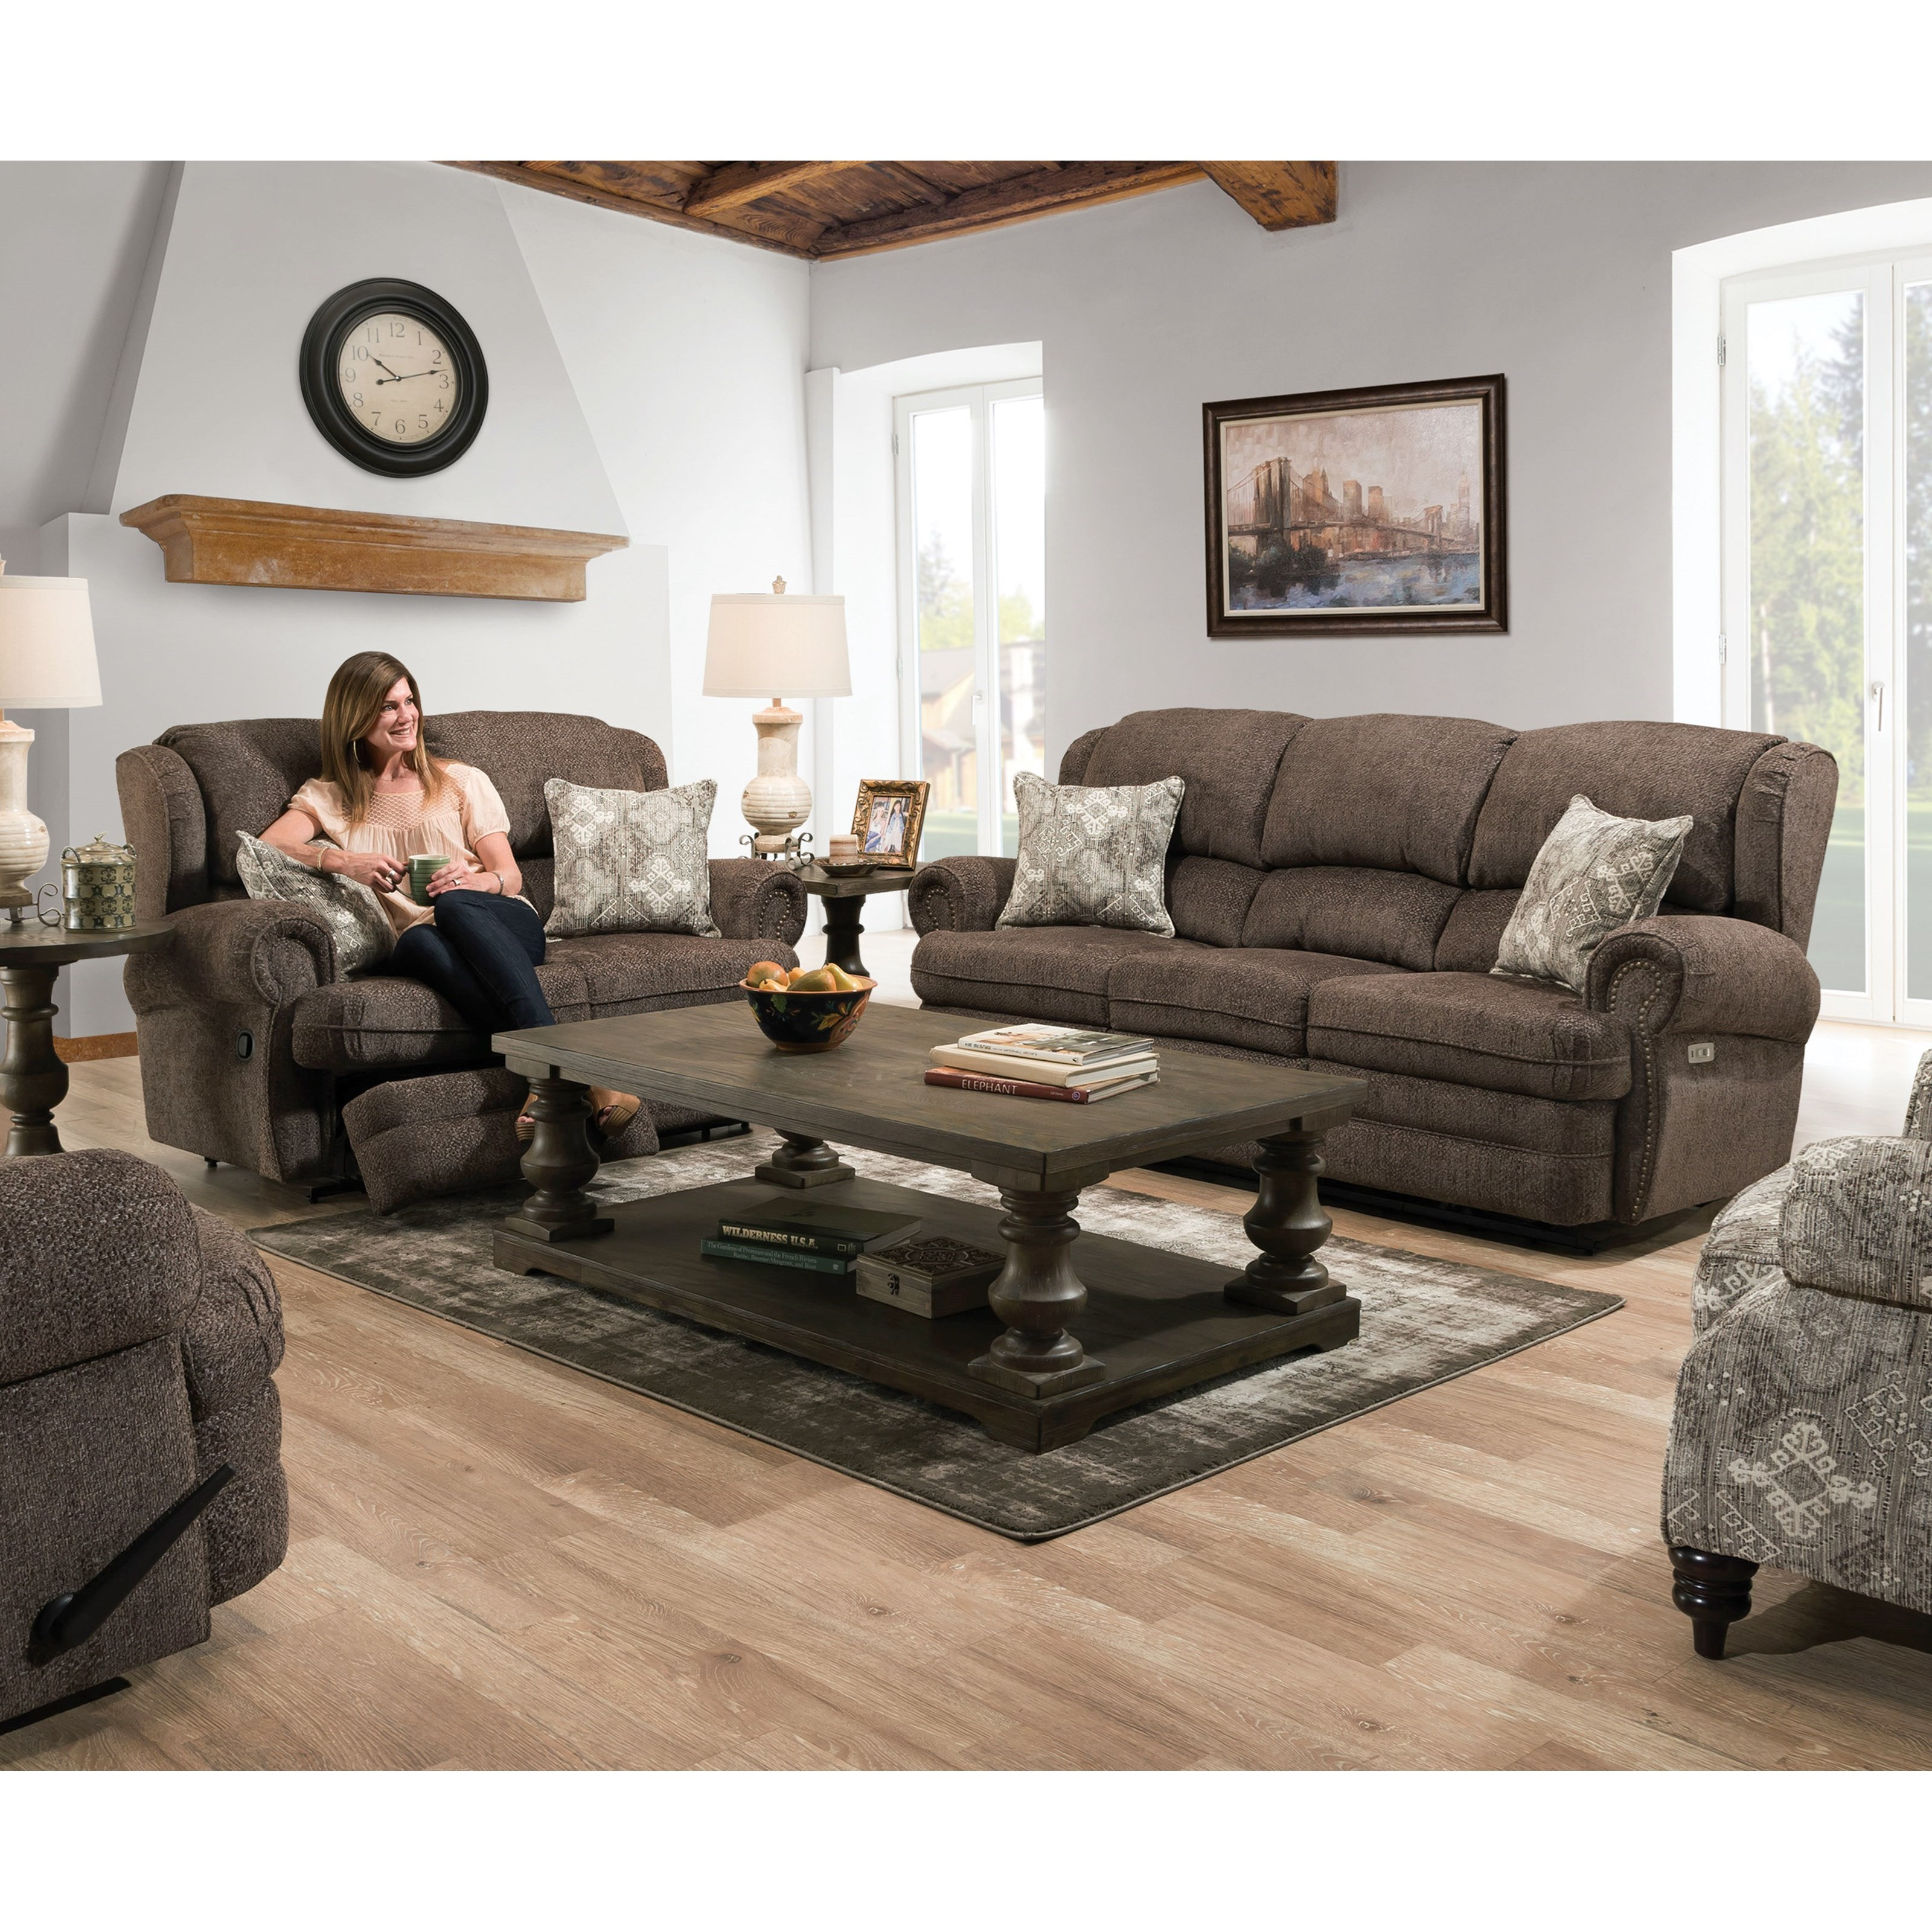 57000 Power Reclining Living Room Group by United Furniture Industries at Bullard Furniture